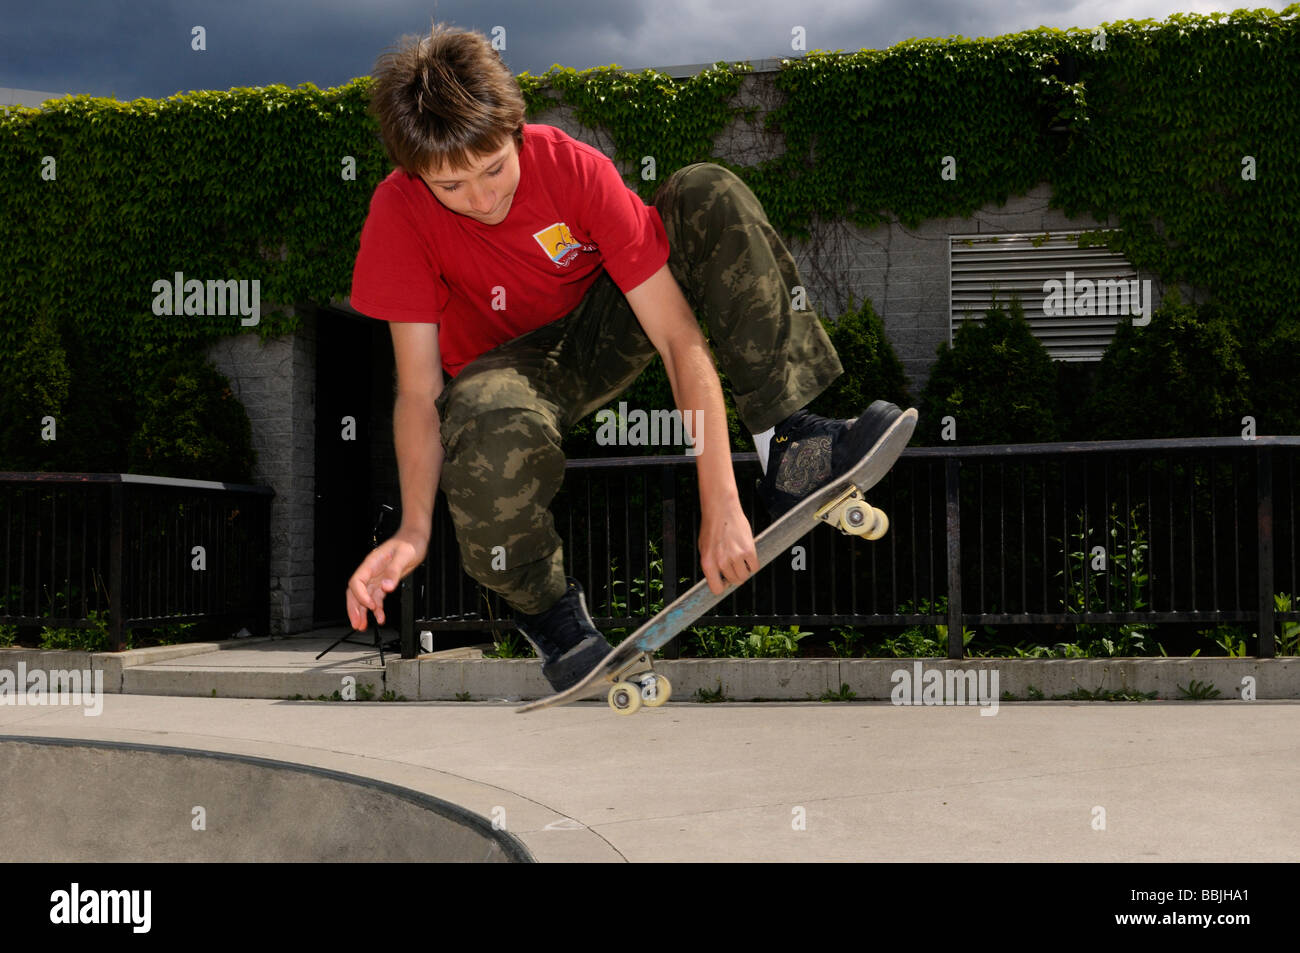 Airborne boy doing a mute grab Slobair on a skateboard above a concrete bowl at a Toronto outdoor Park - Stock Image